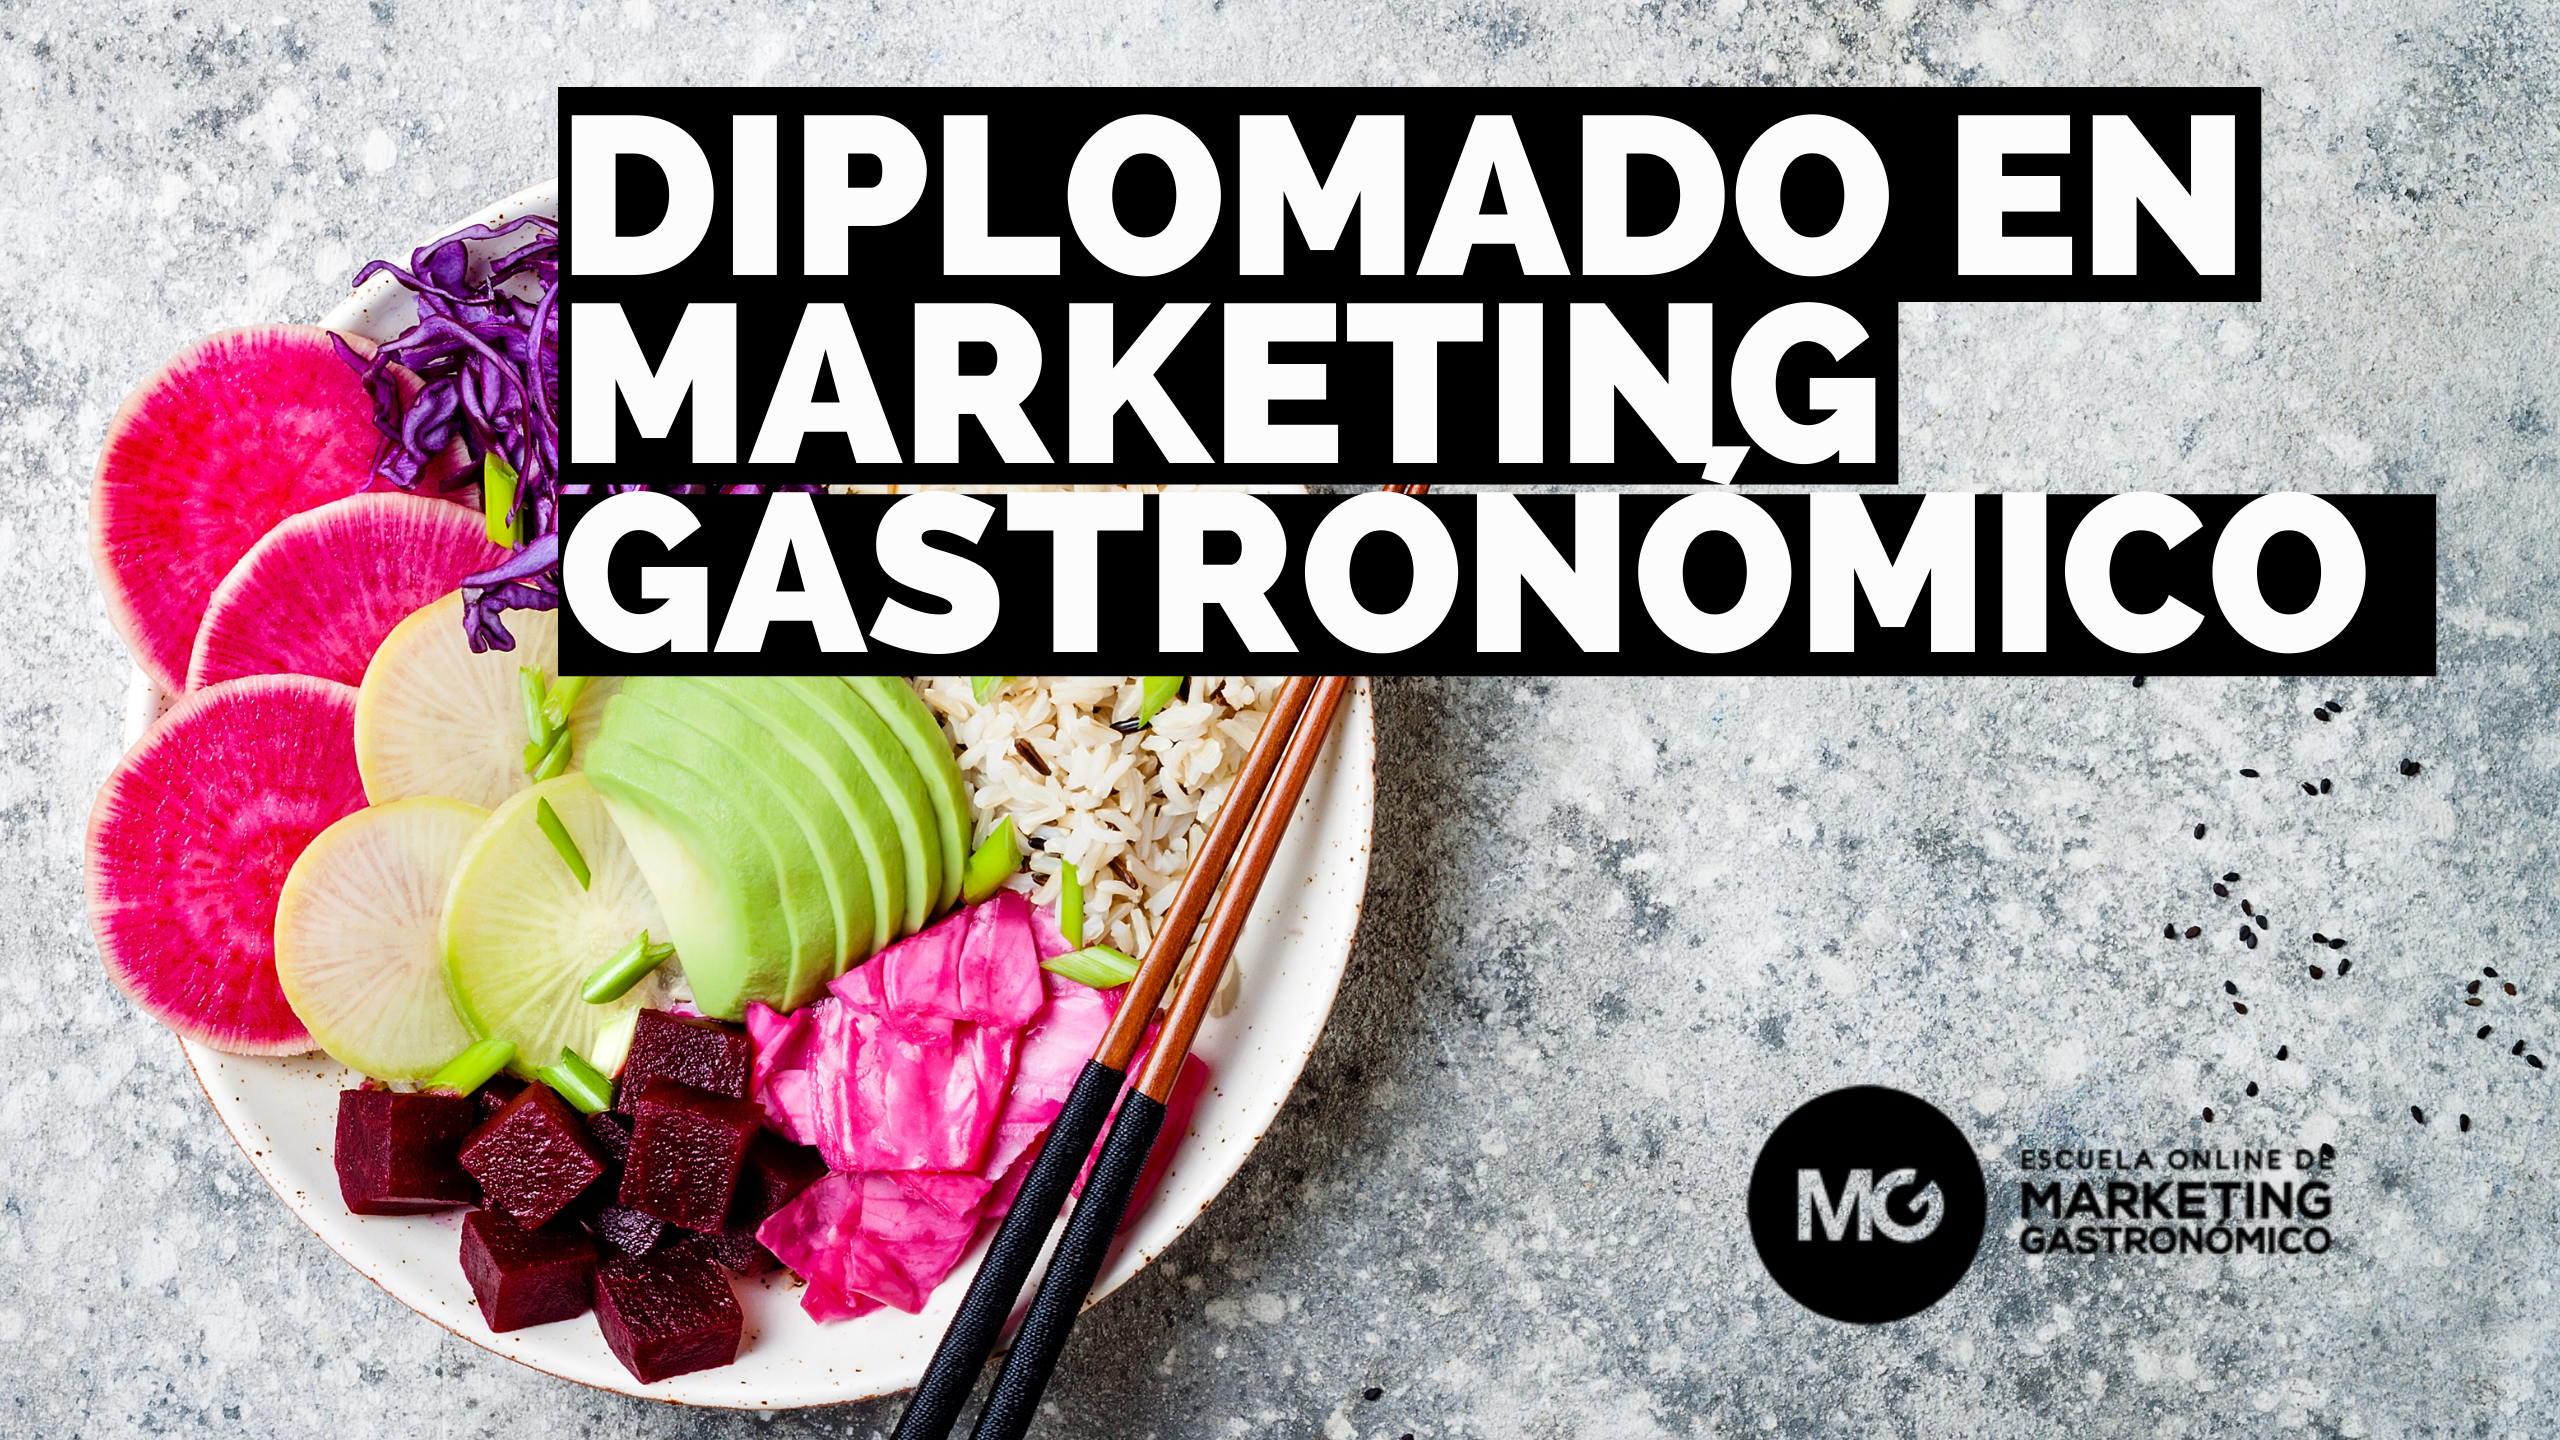 Diplomado en Marketing Gastronómico